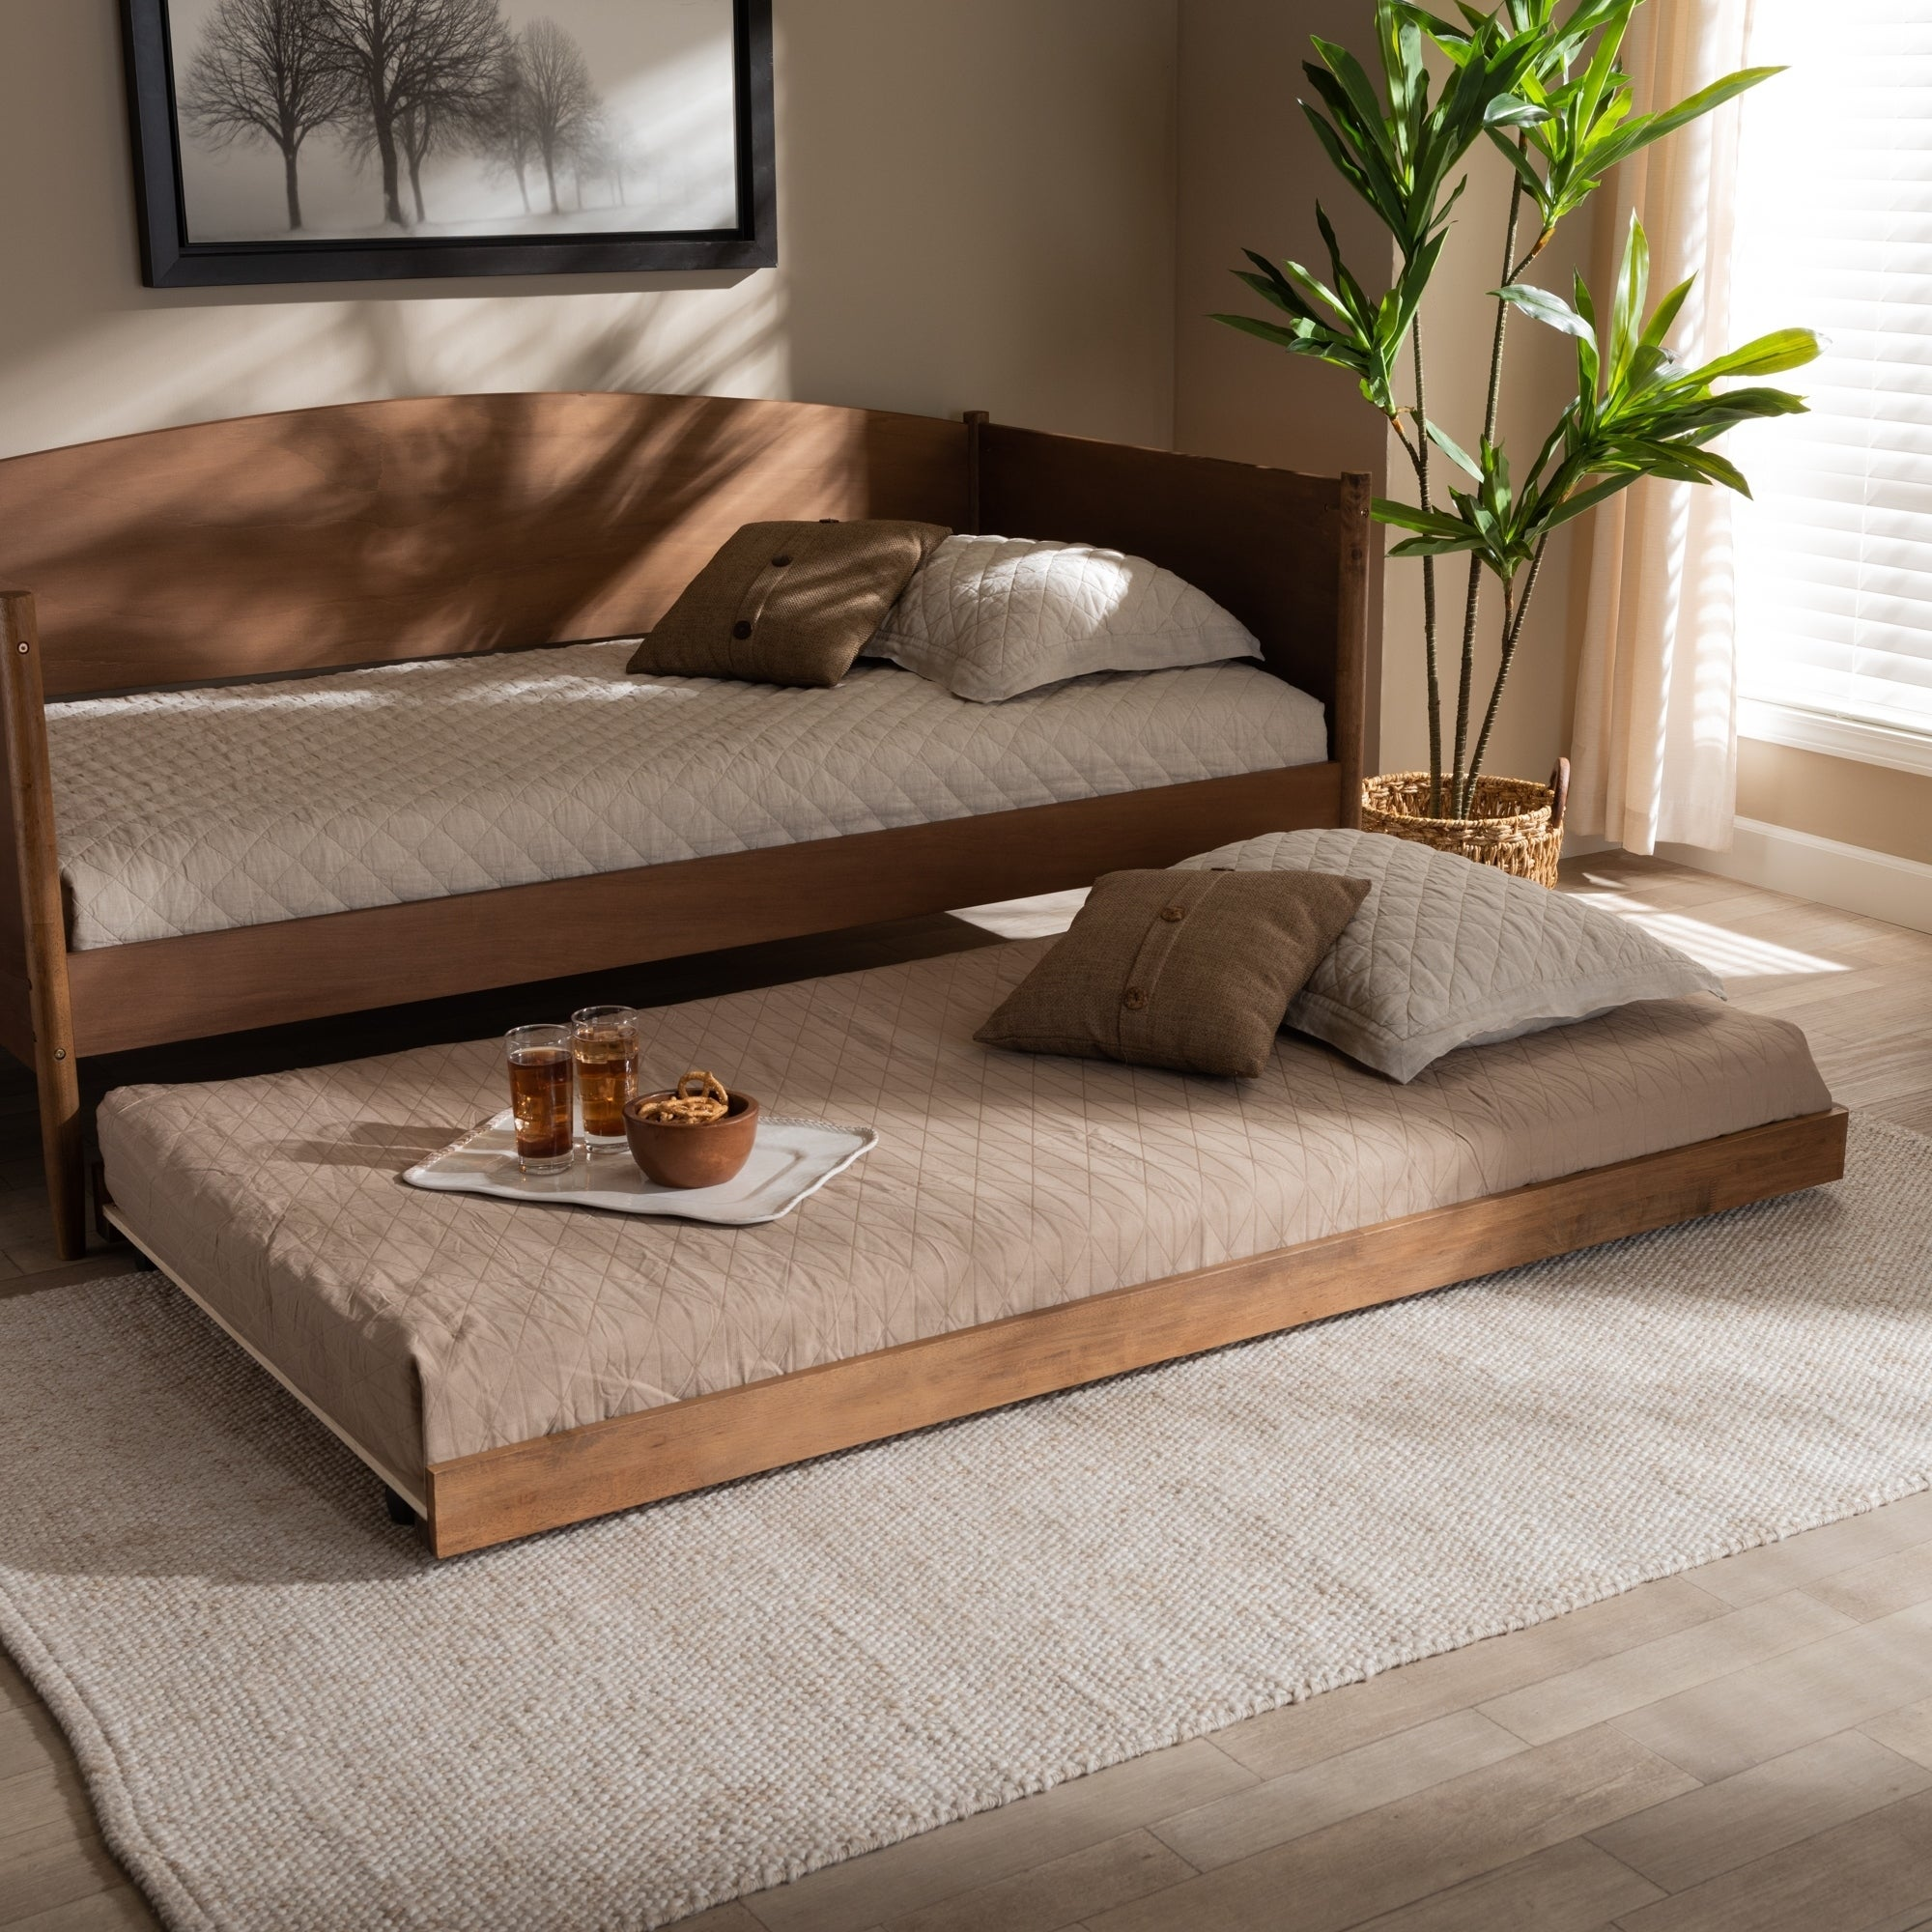 Picture of: Carson Carrington Daikanvik Modern And Contemporary Trundle Bed Overstock 29094982